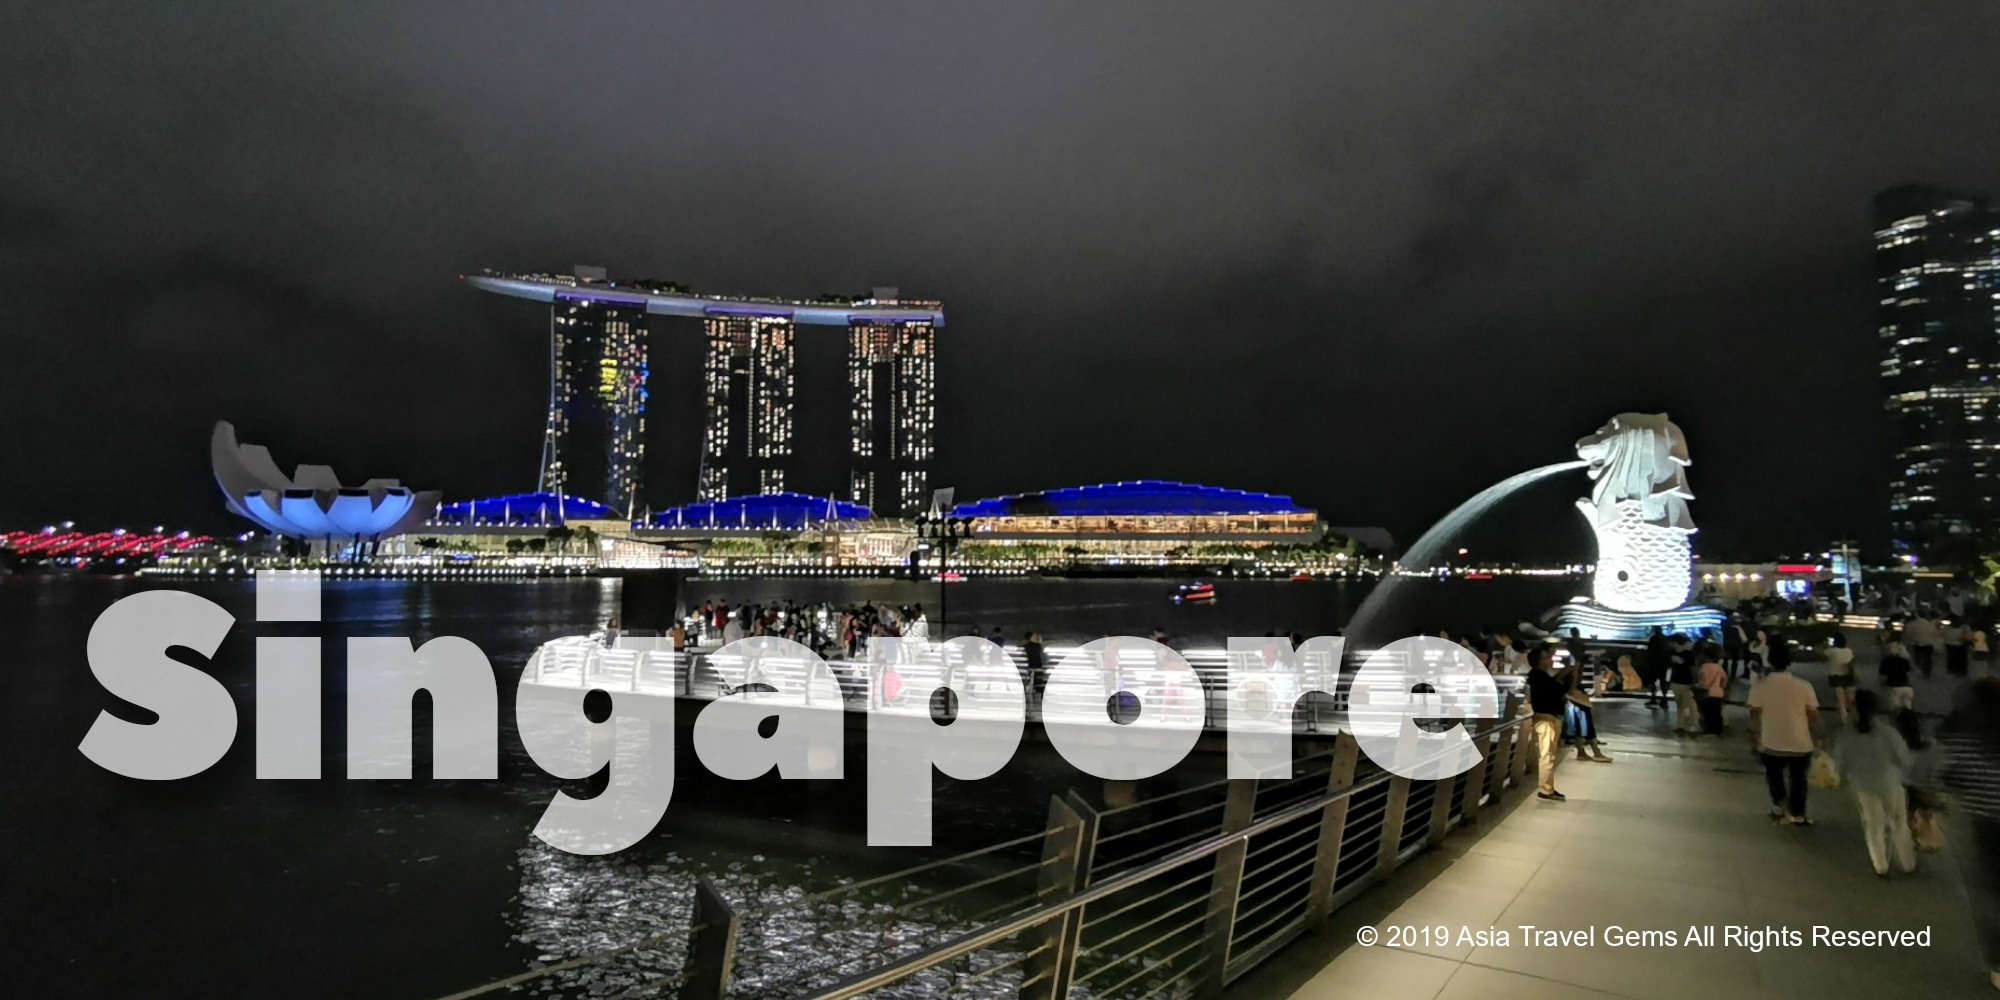 Singapore Merlion and Marina Bay Sands